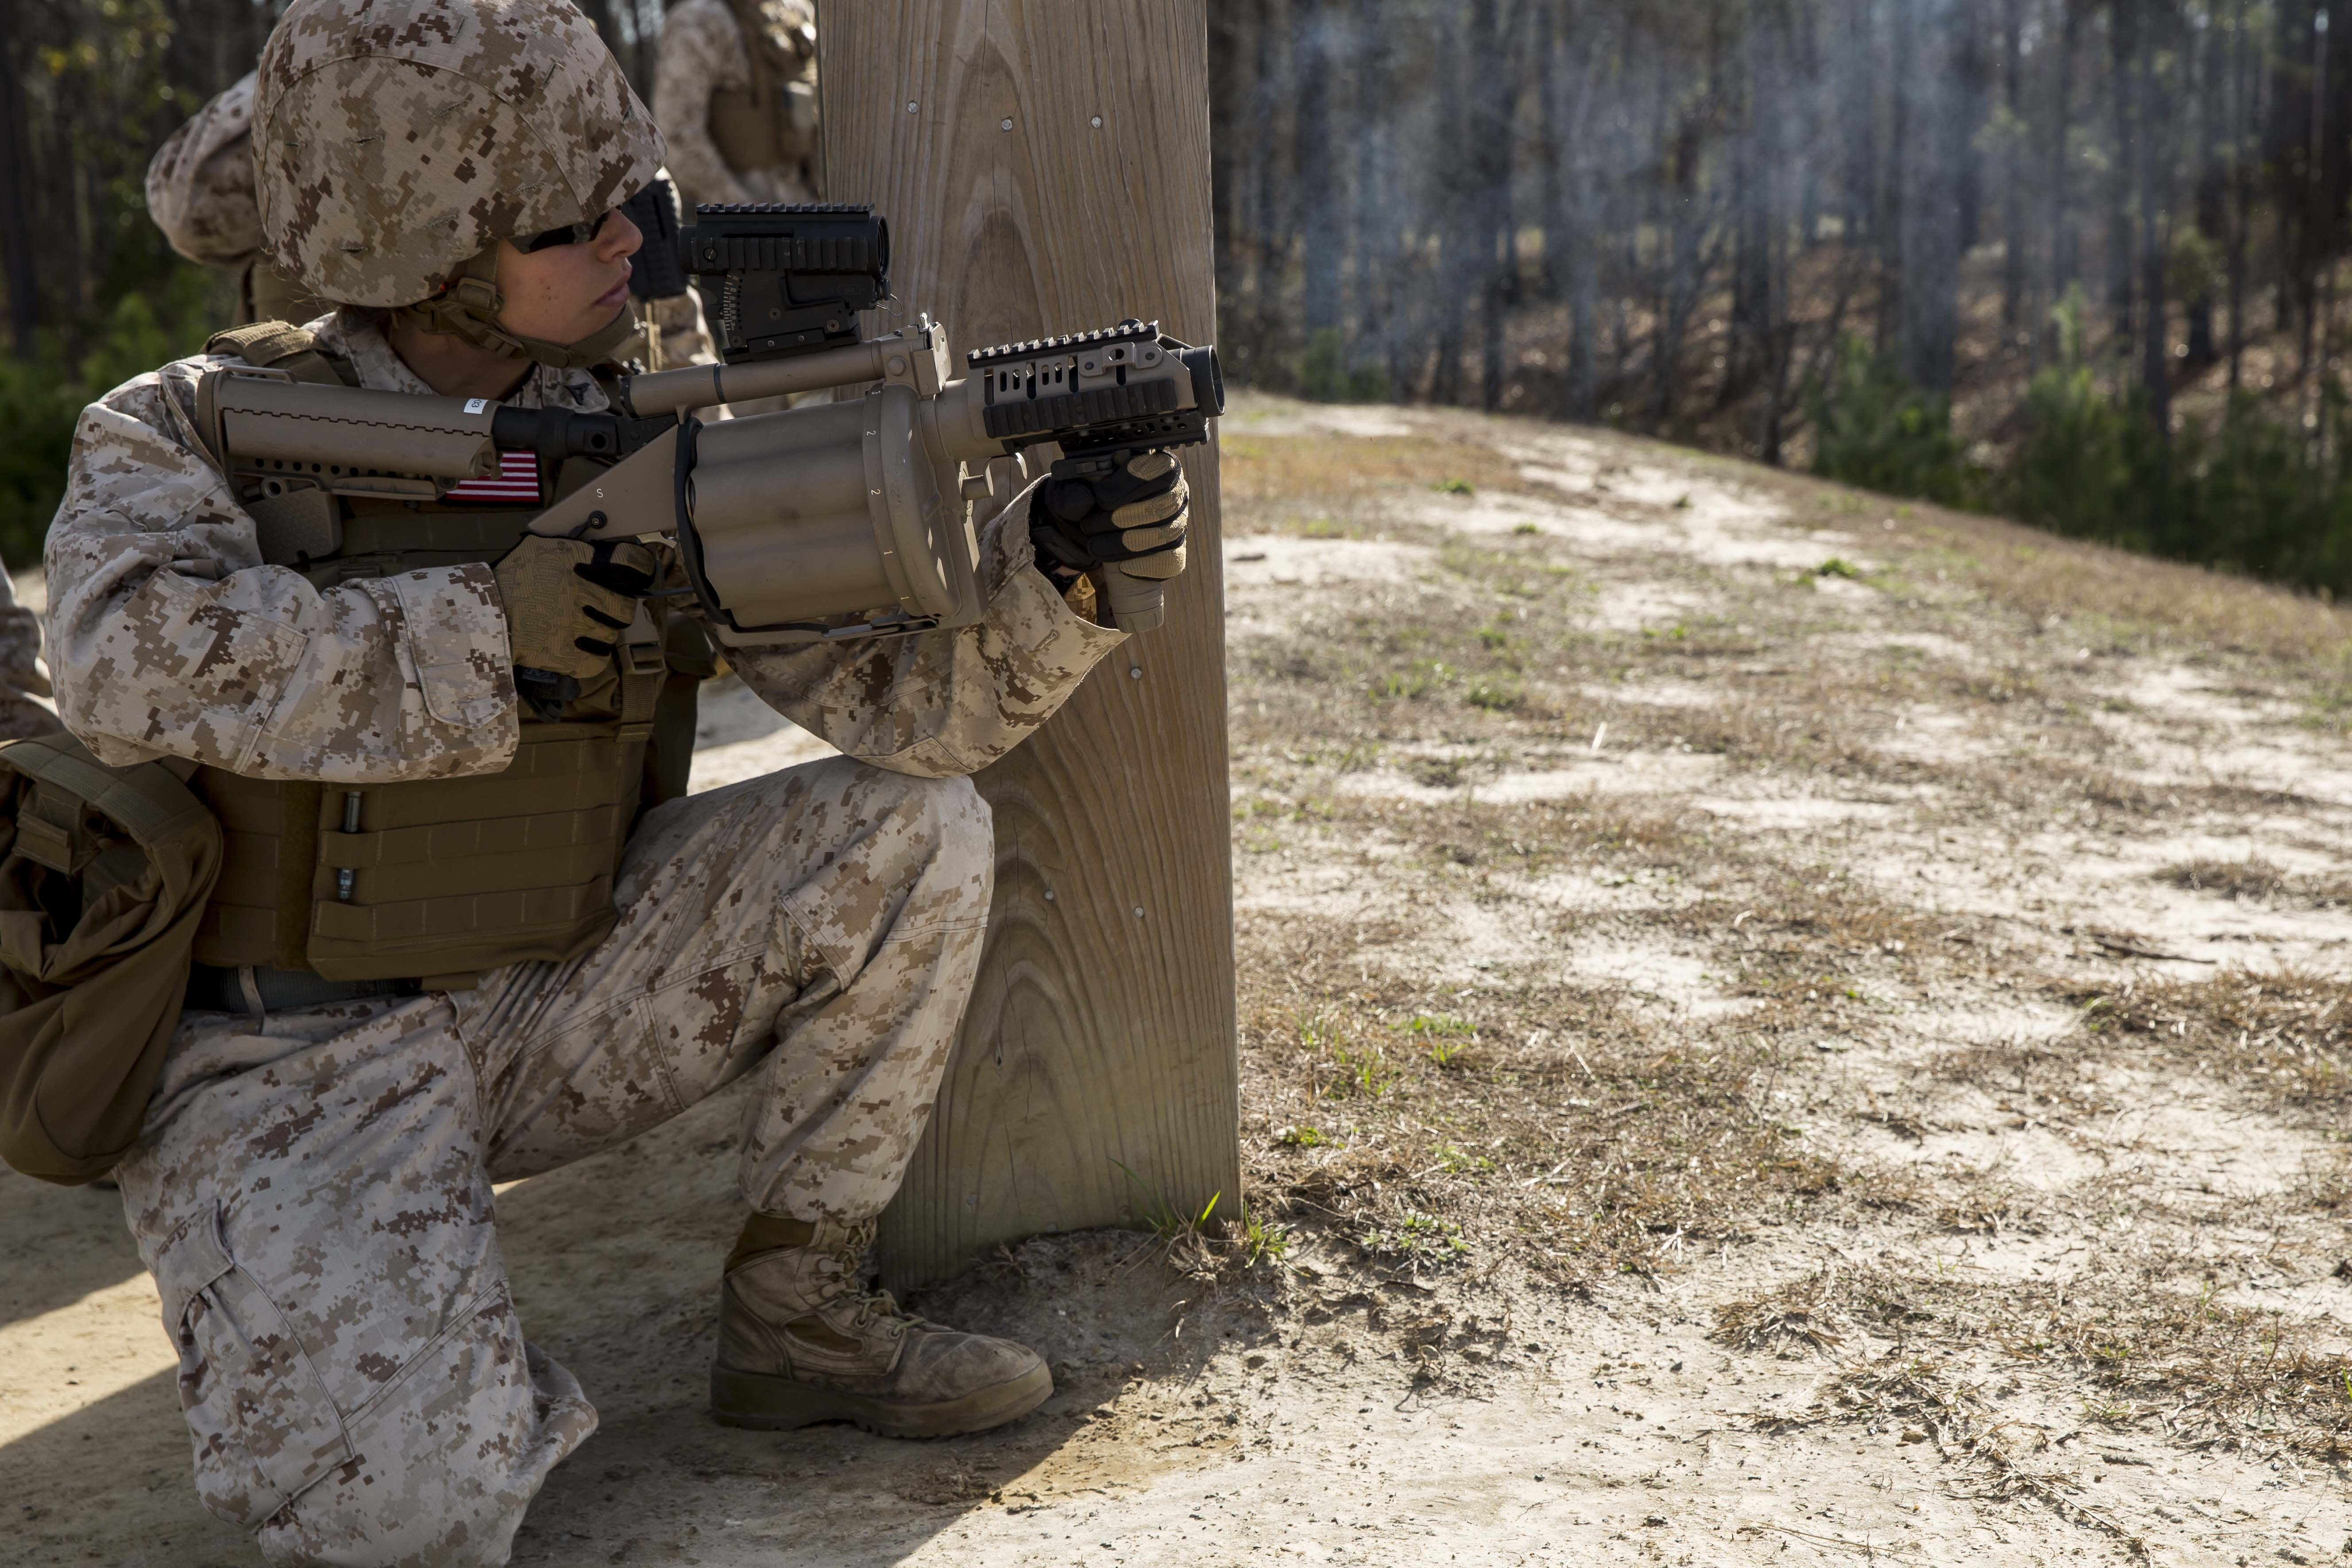 File:8th ESB launches unit proficiency through weapons